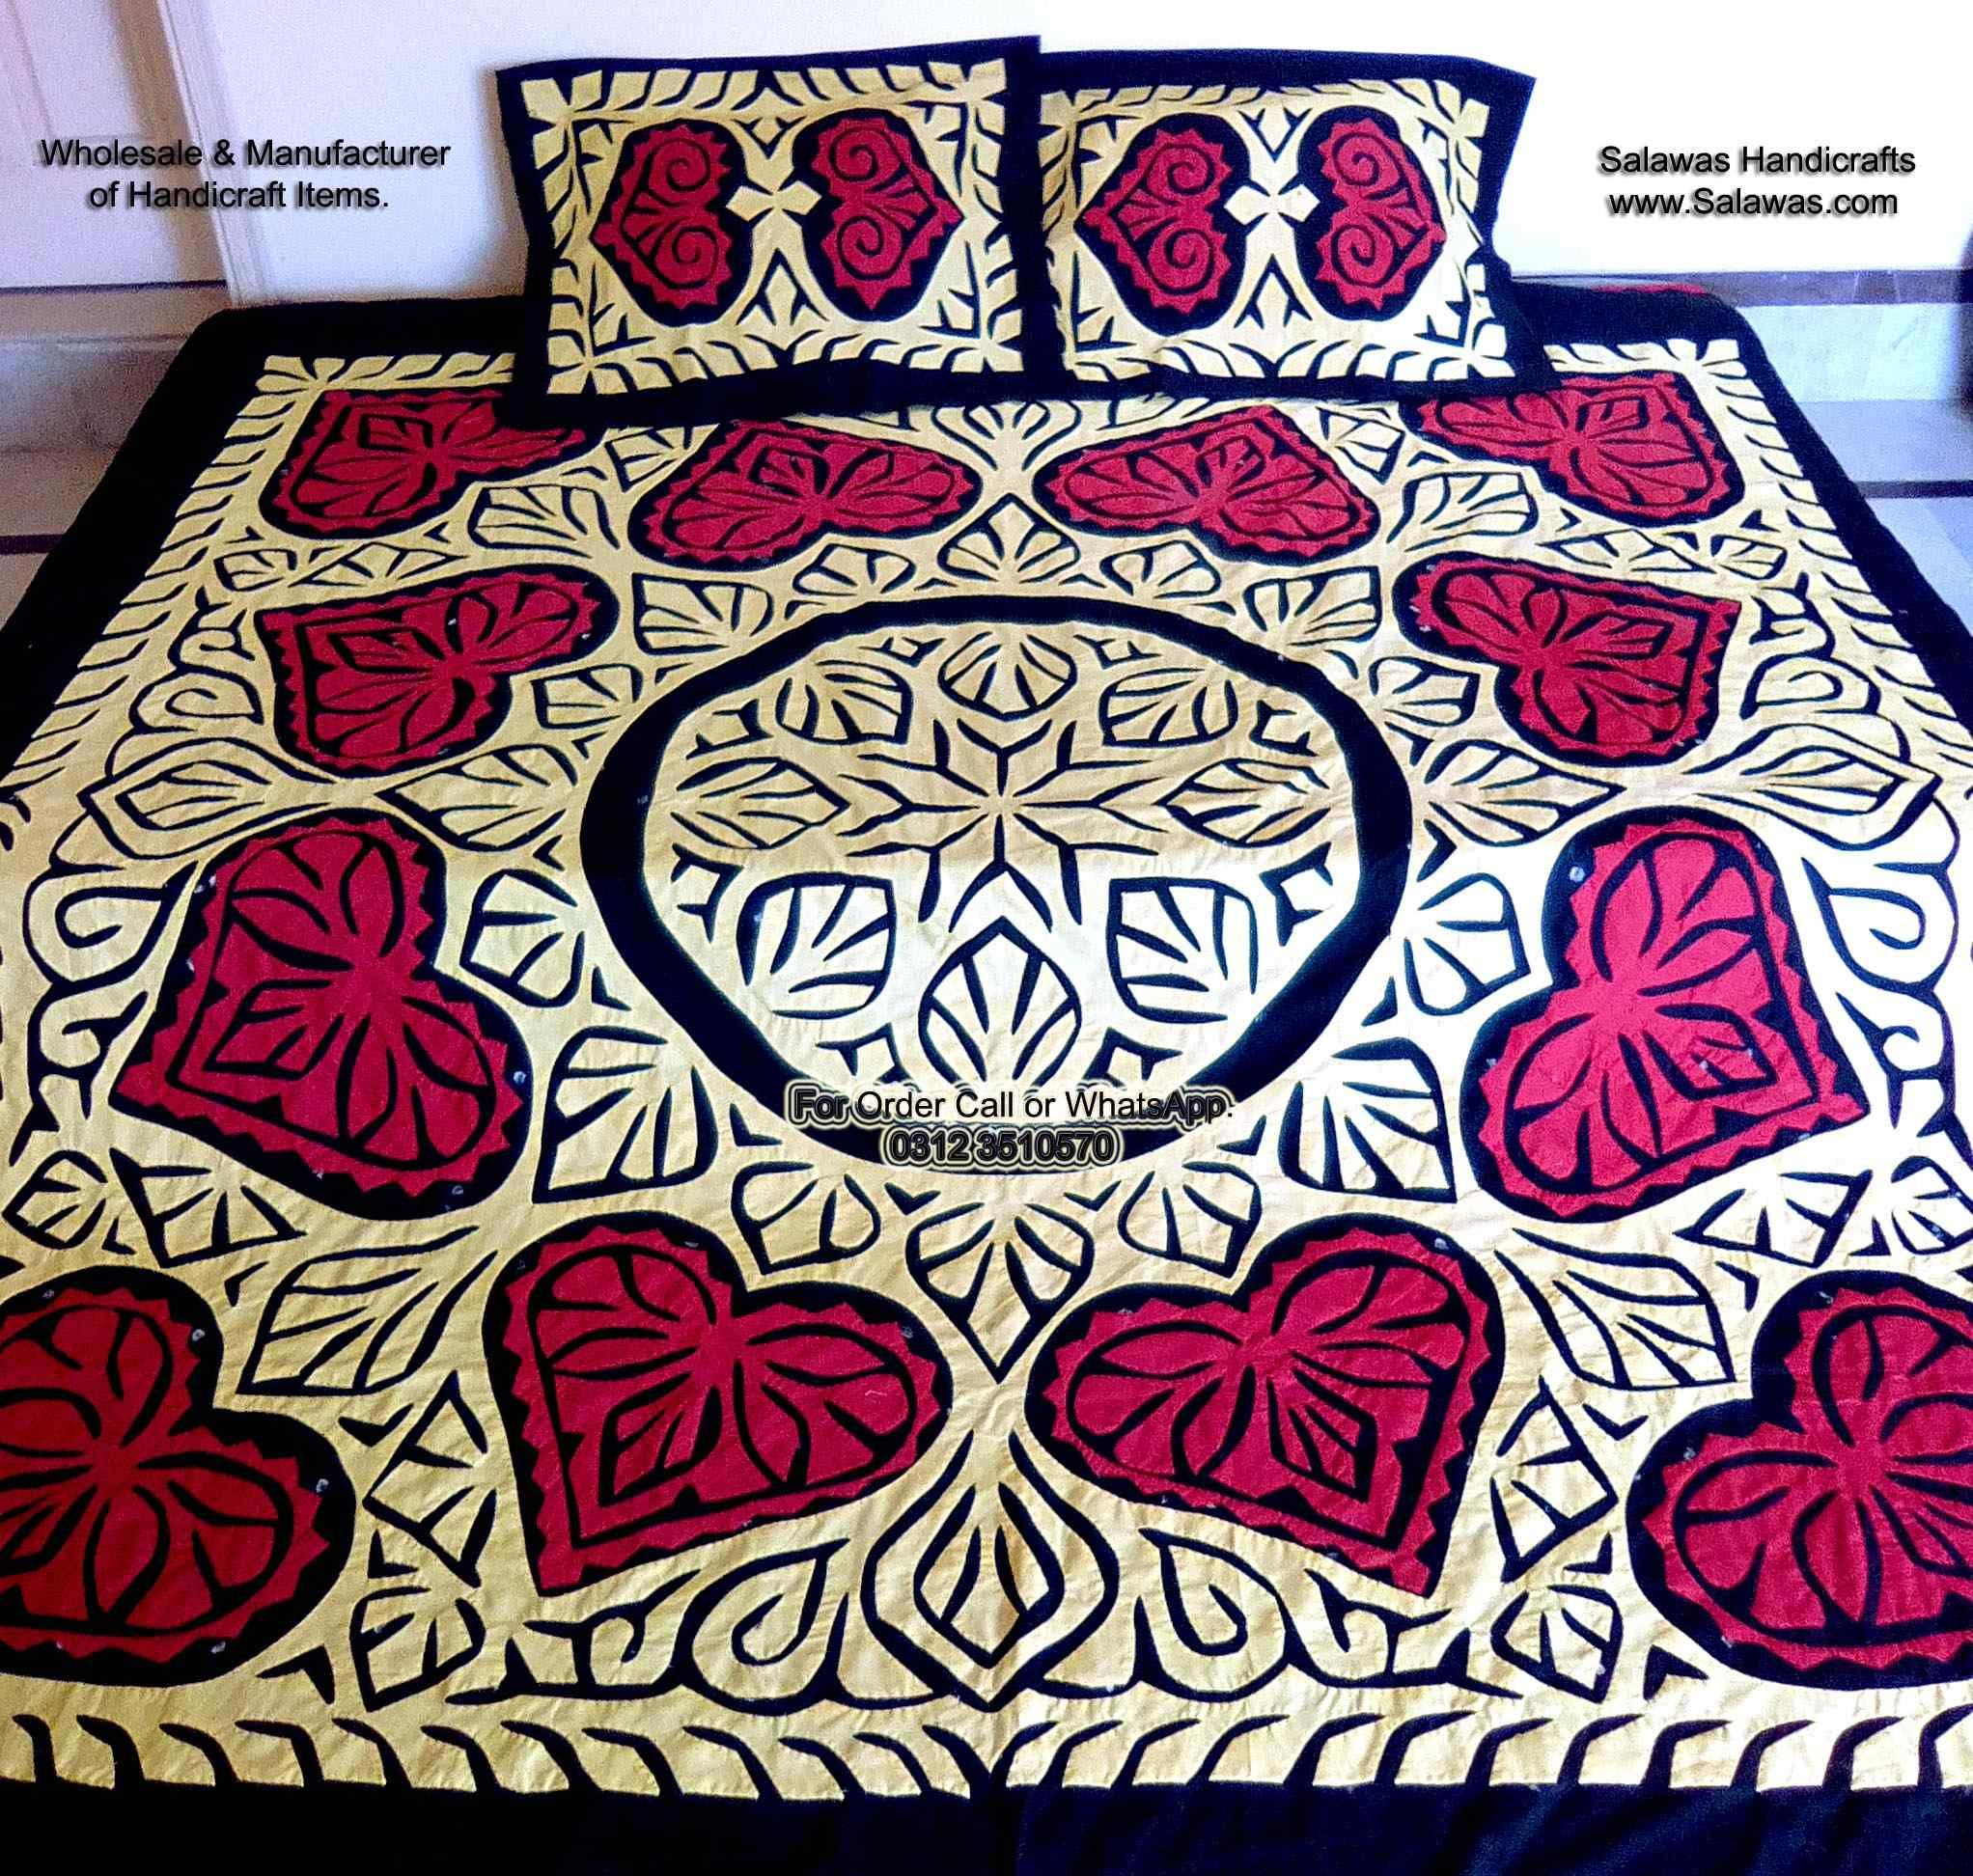 The Best Fancy Bridal Bed Sheets Designs Stani With Prices In Karachi New Sindhi Is For Bride To Give As Gifts Weddings